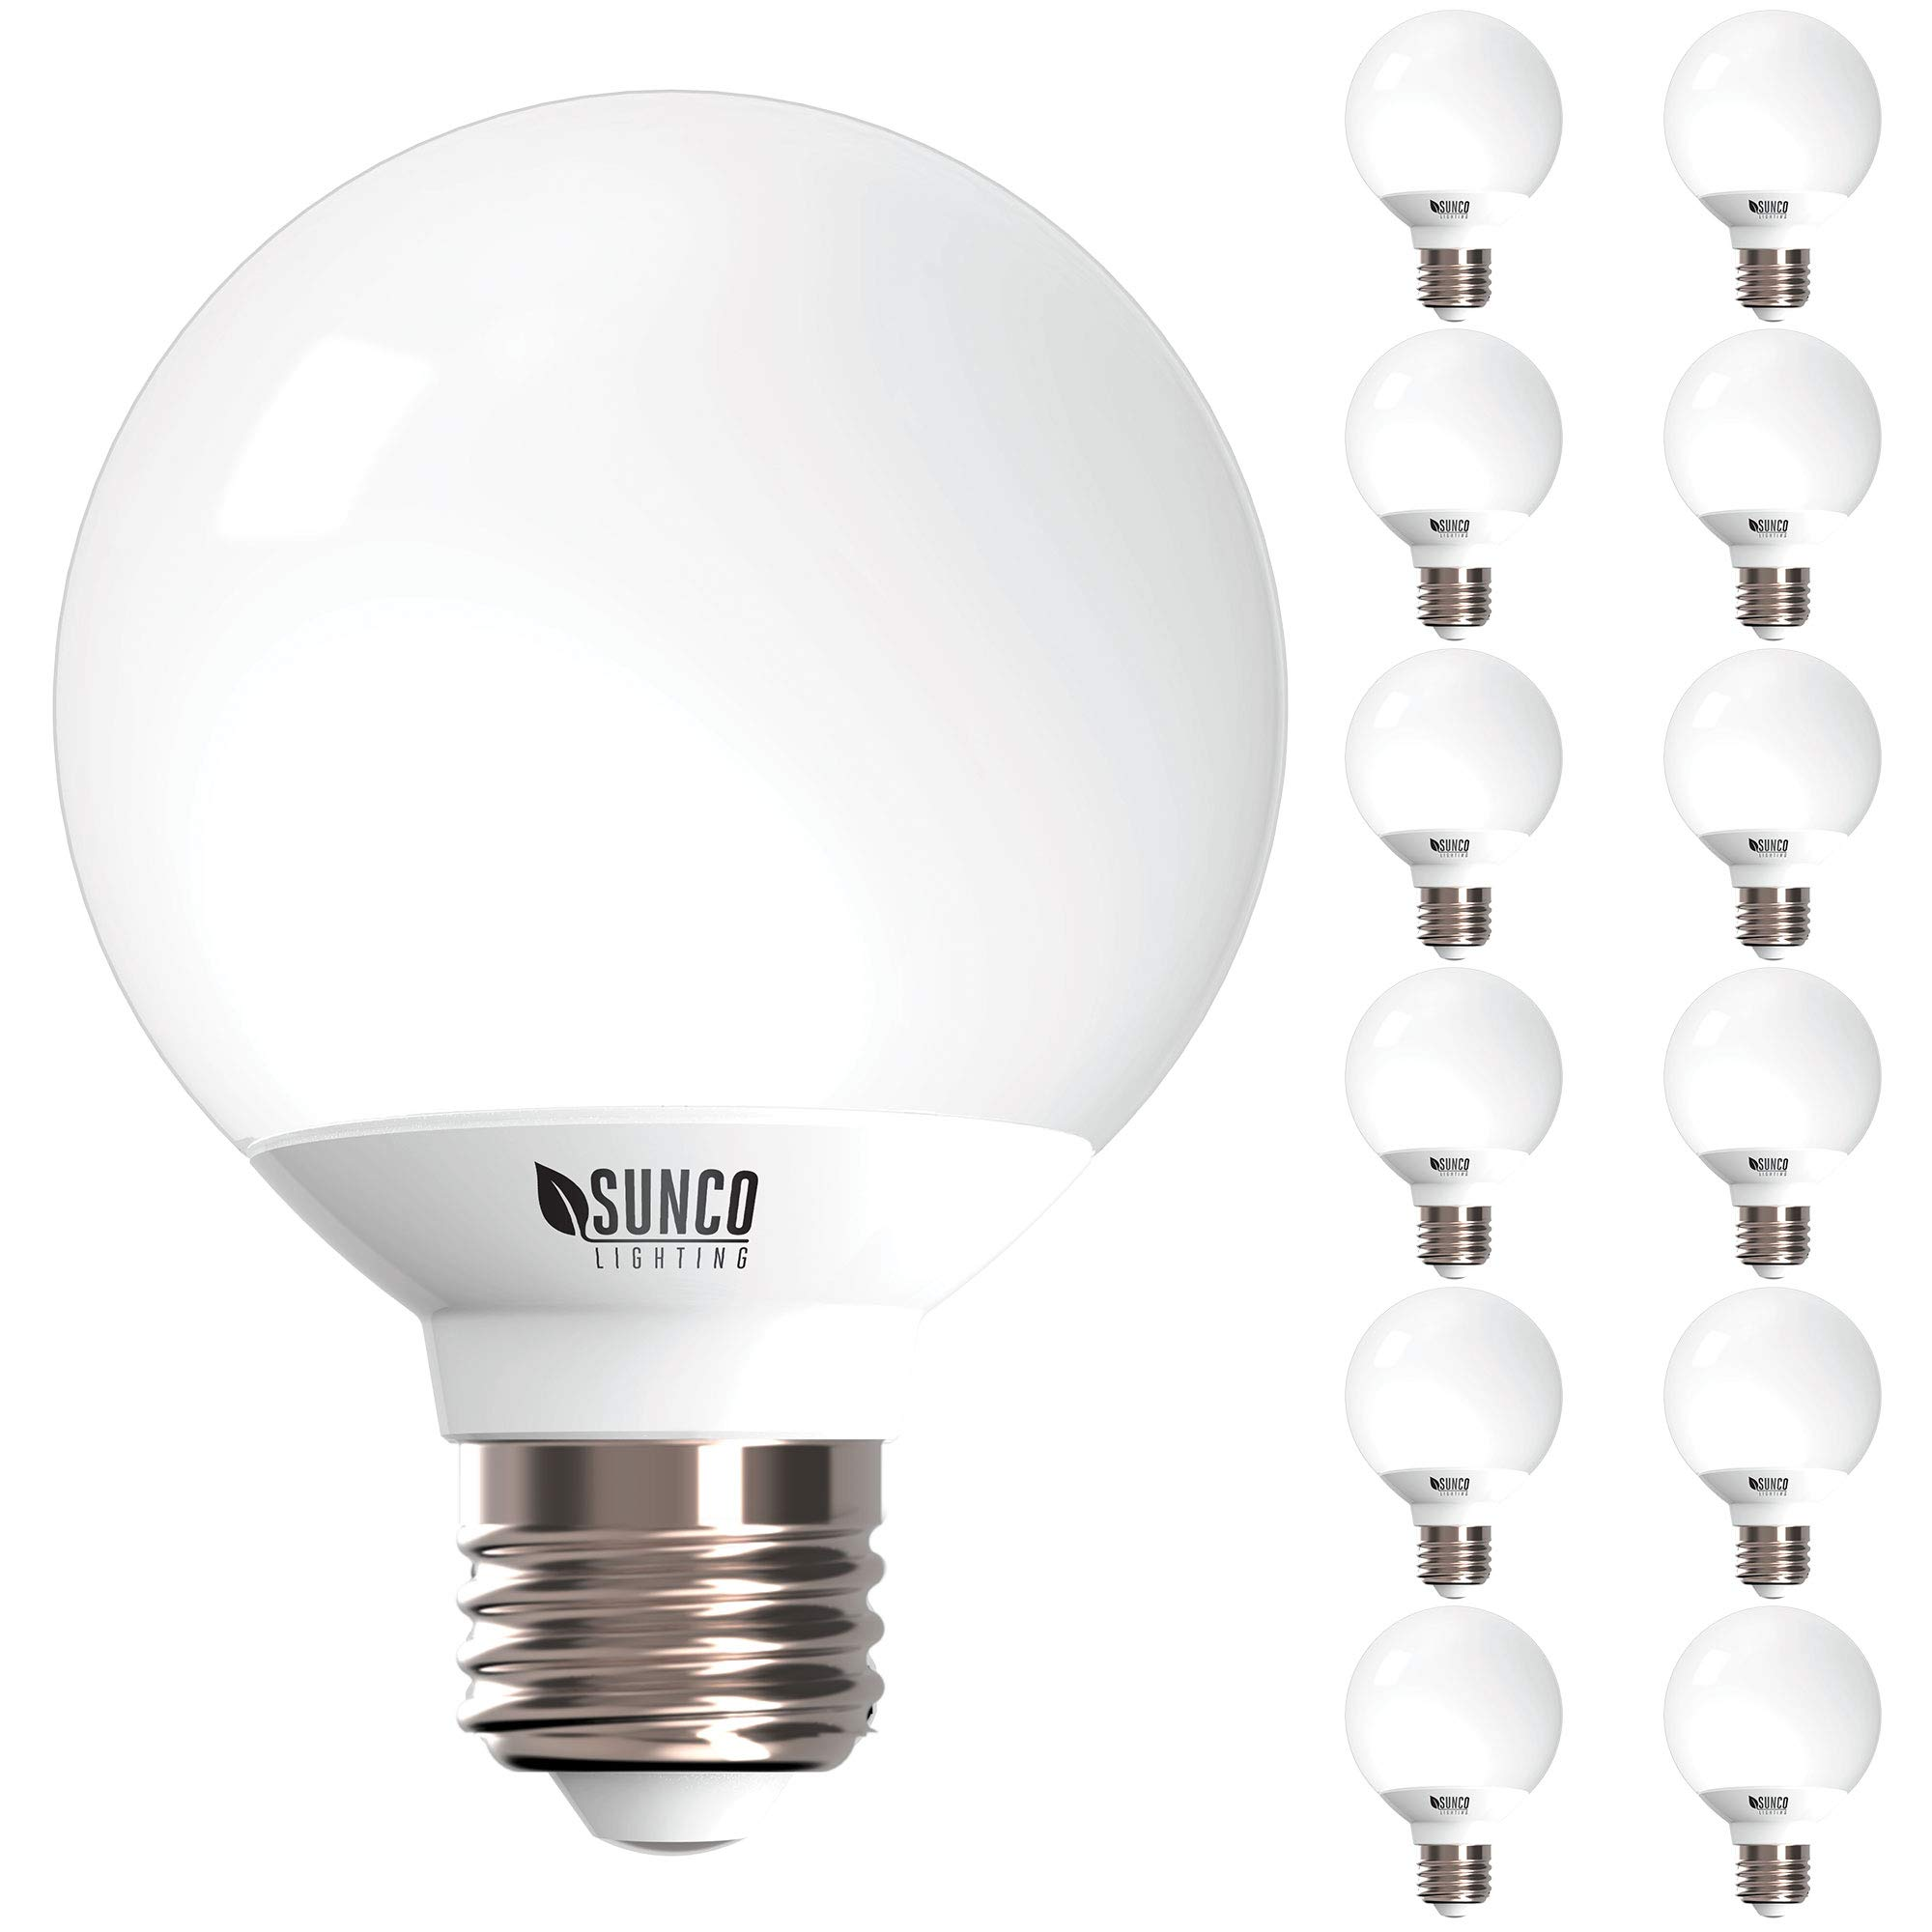 Sunco Lighting 12 Pack G25 LED Globe, 6W=40W, Dimmable, 450 LM, 5000K Daylight, E26 Base, Ideal for Bathroom Vanity or Mirror - UL & Energy Star